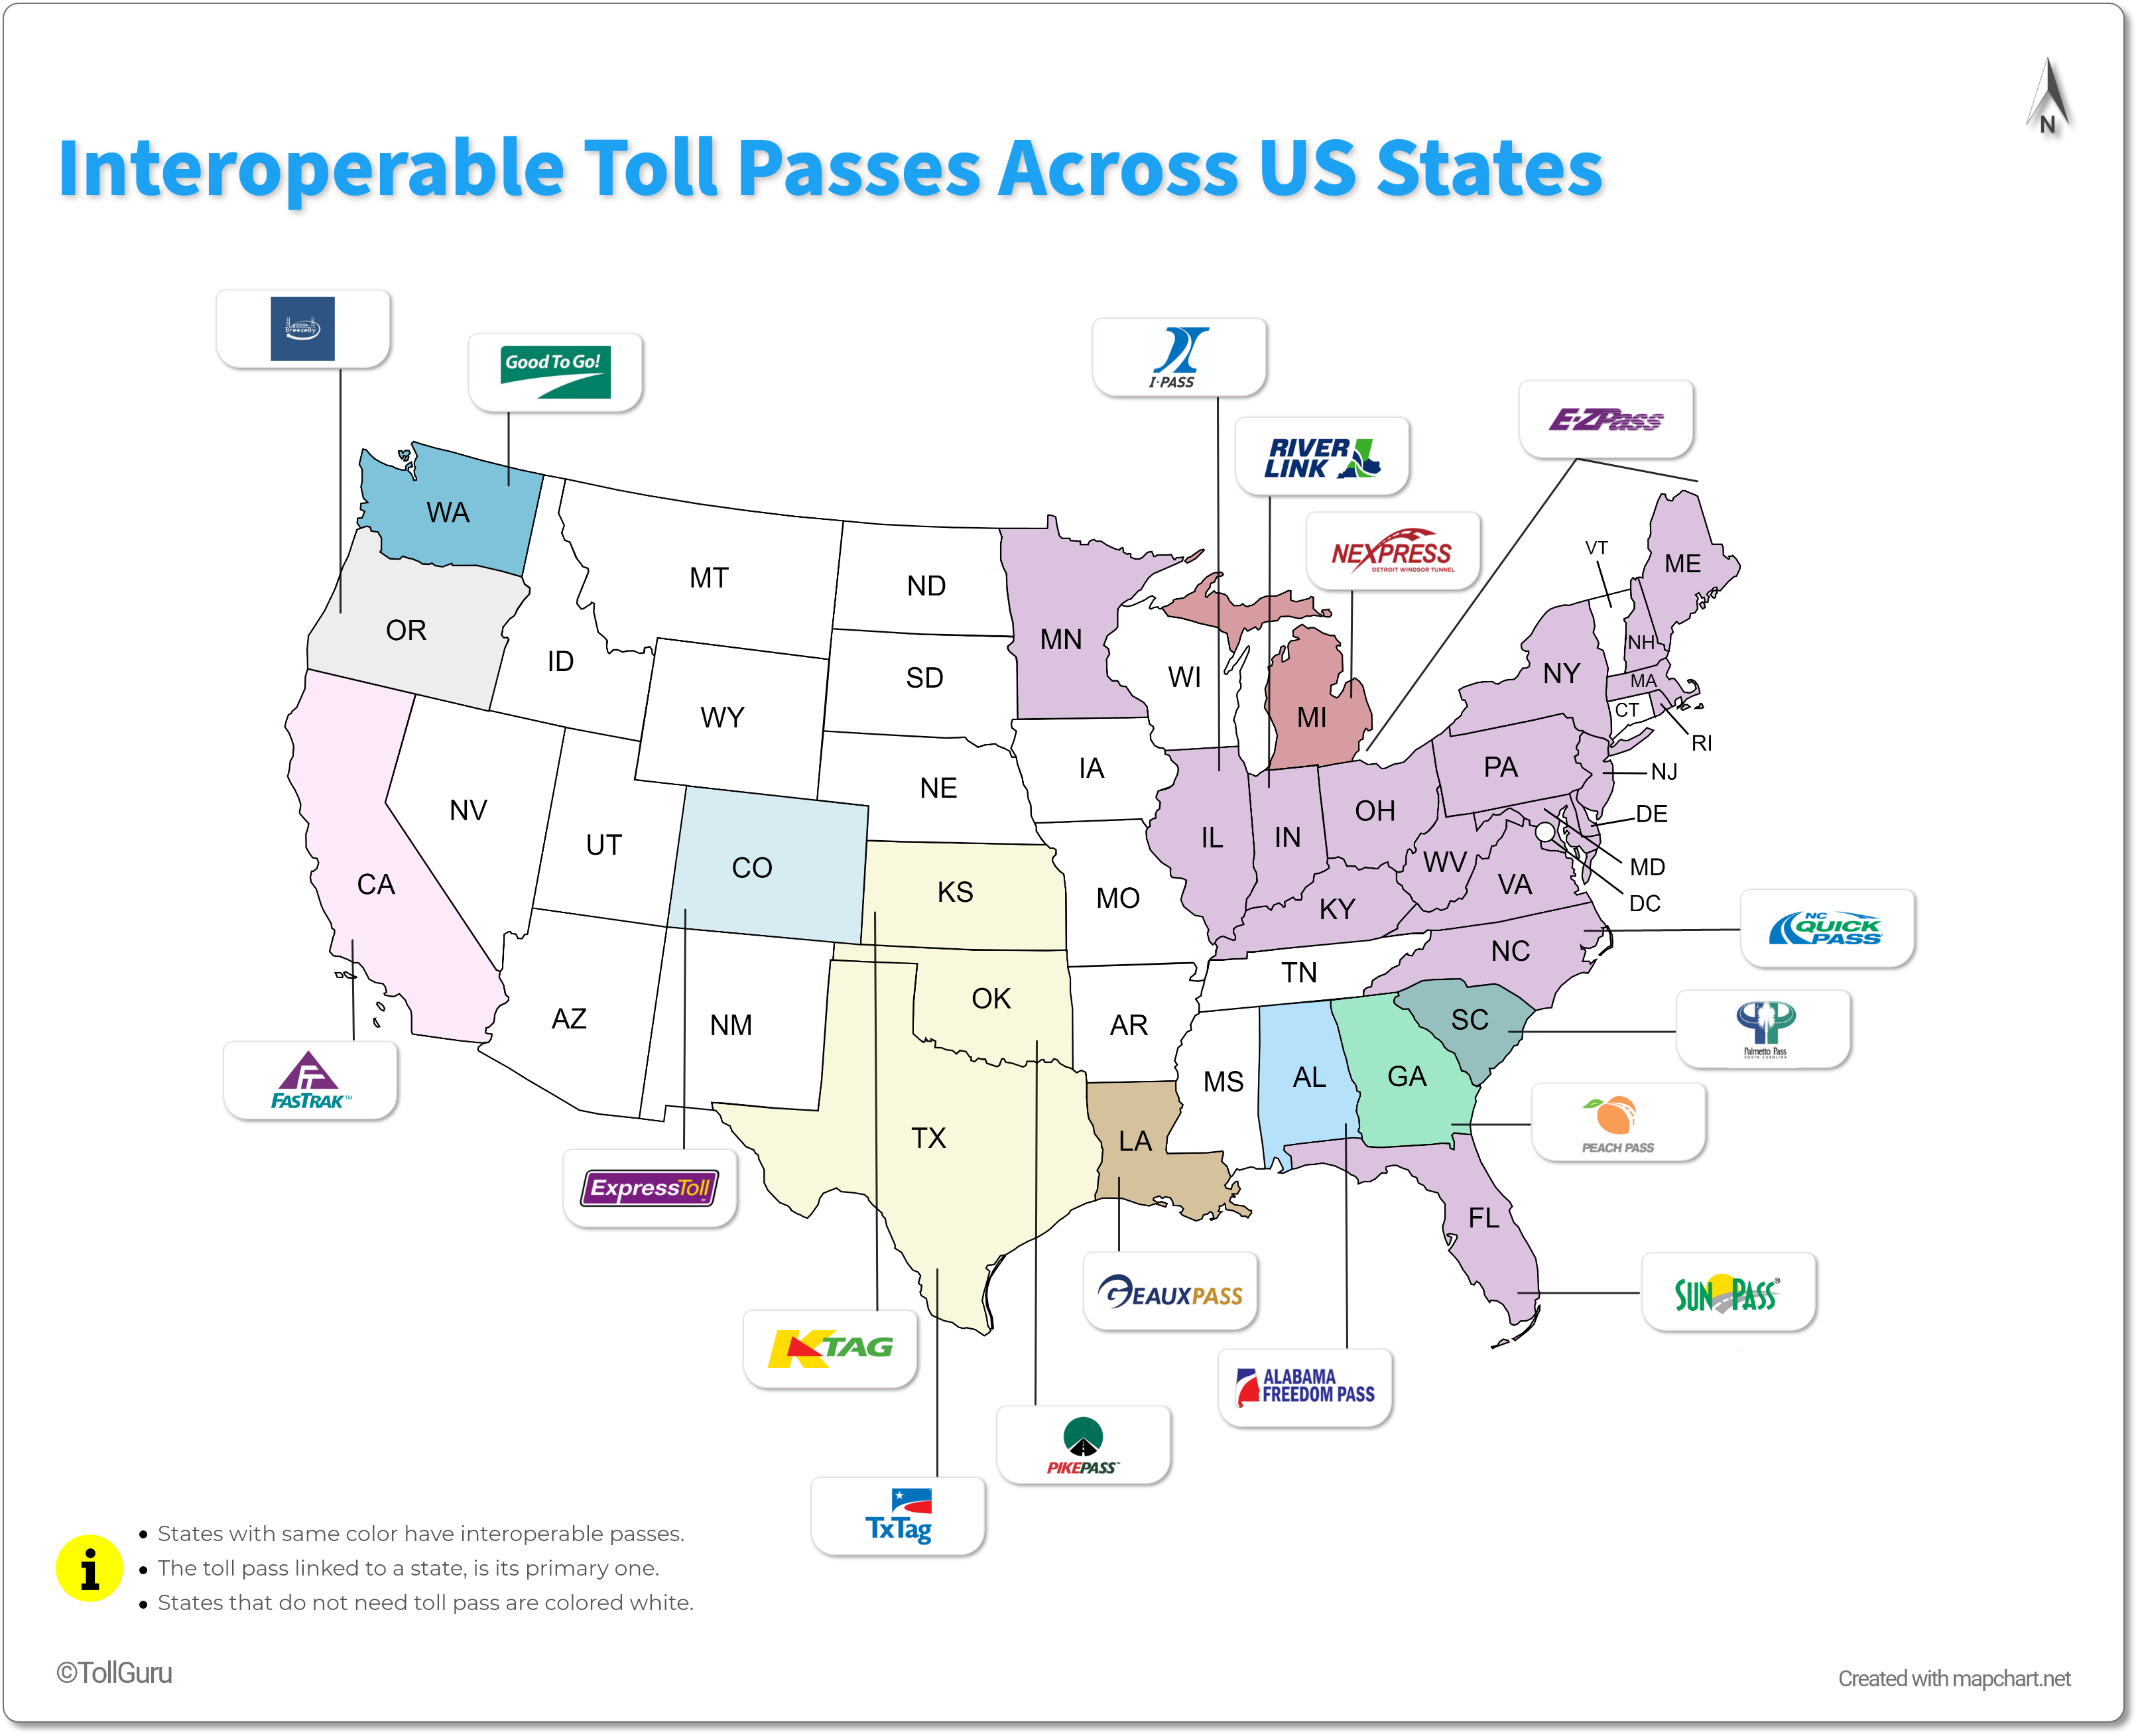 US toll tags accepted across the states.